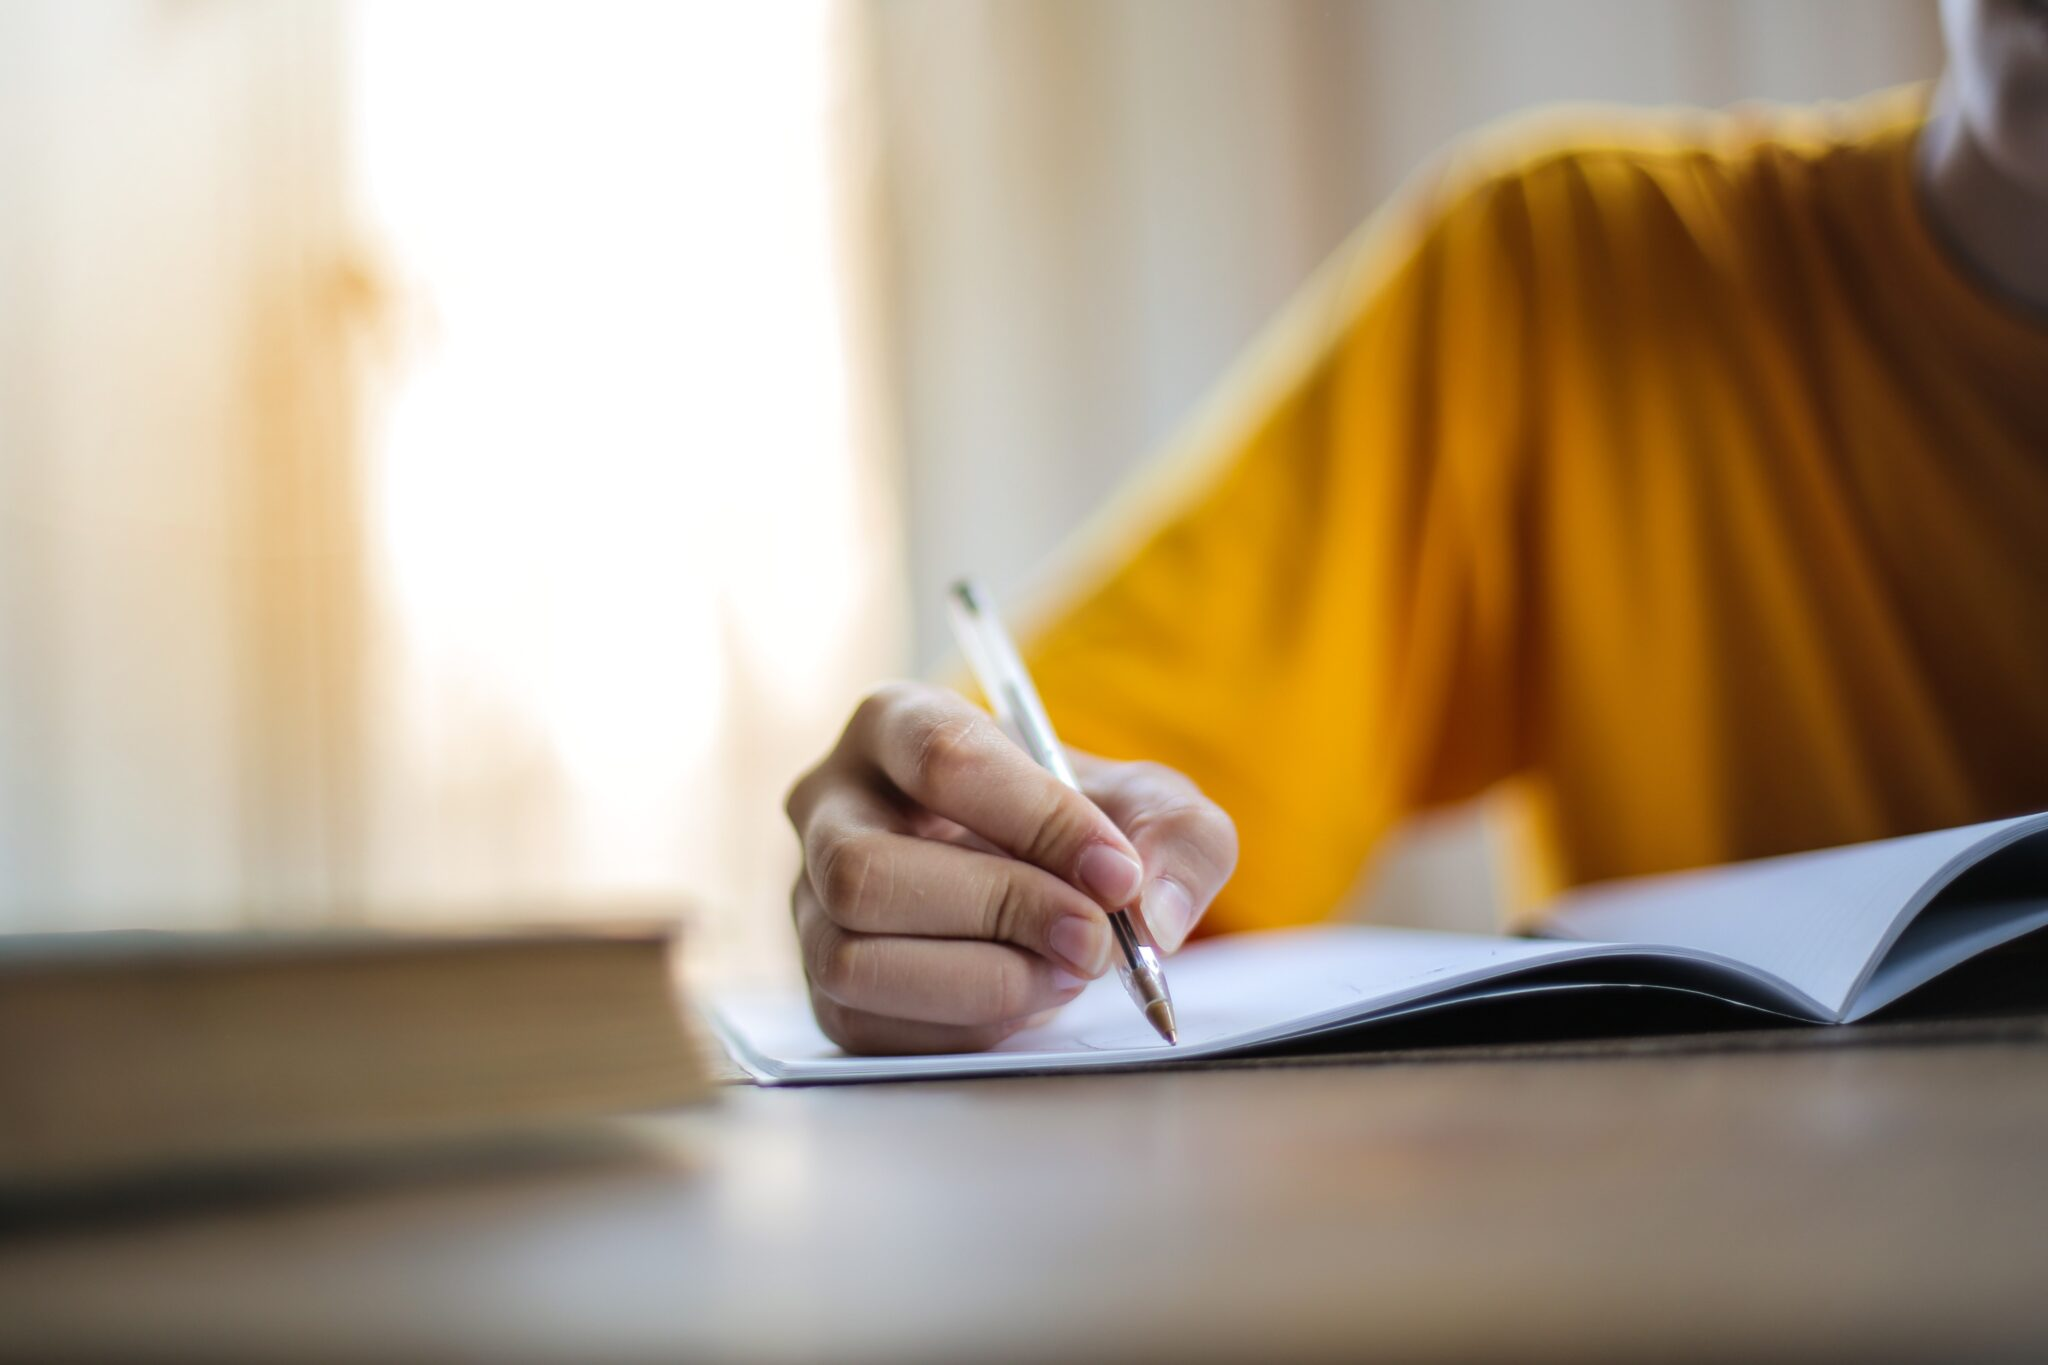 Transcreators are often copywriters experienced in marketing. Description: a person in a yellow shirt writing with a pen in a notebook, which is on a desk.